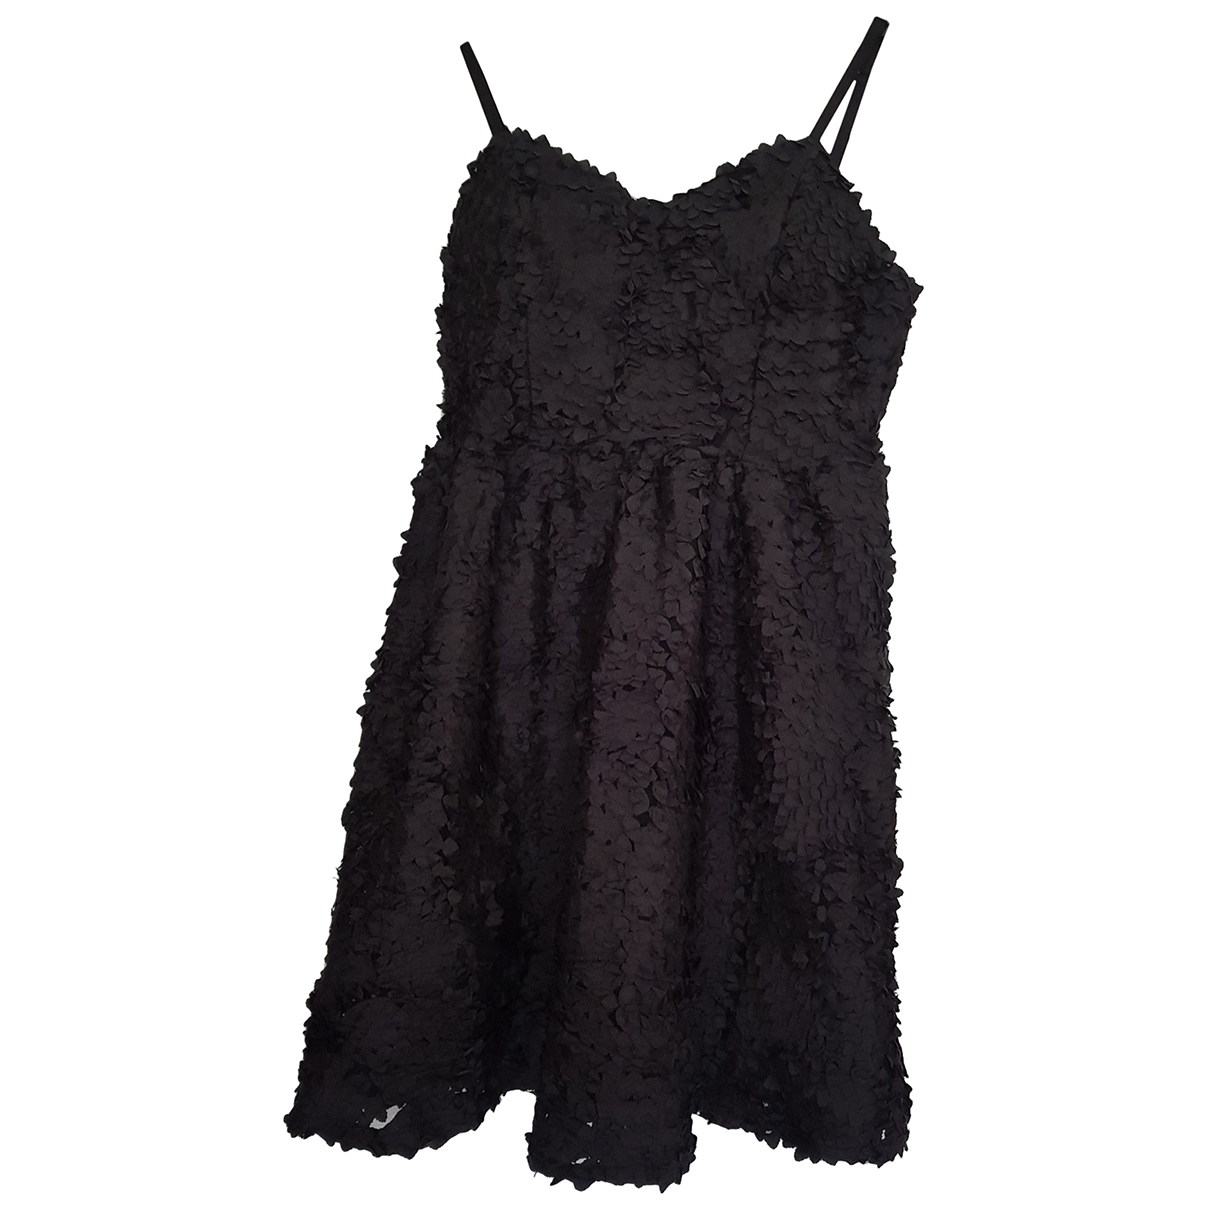 Brigitte Bardot \N Black dress for Women 36 FR